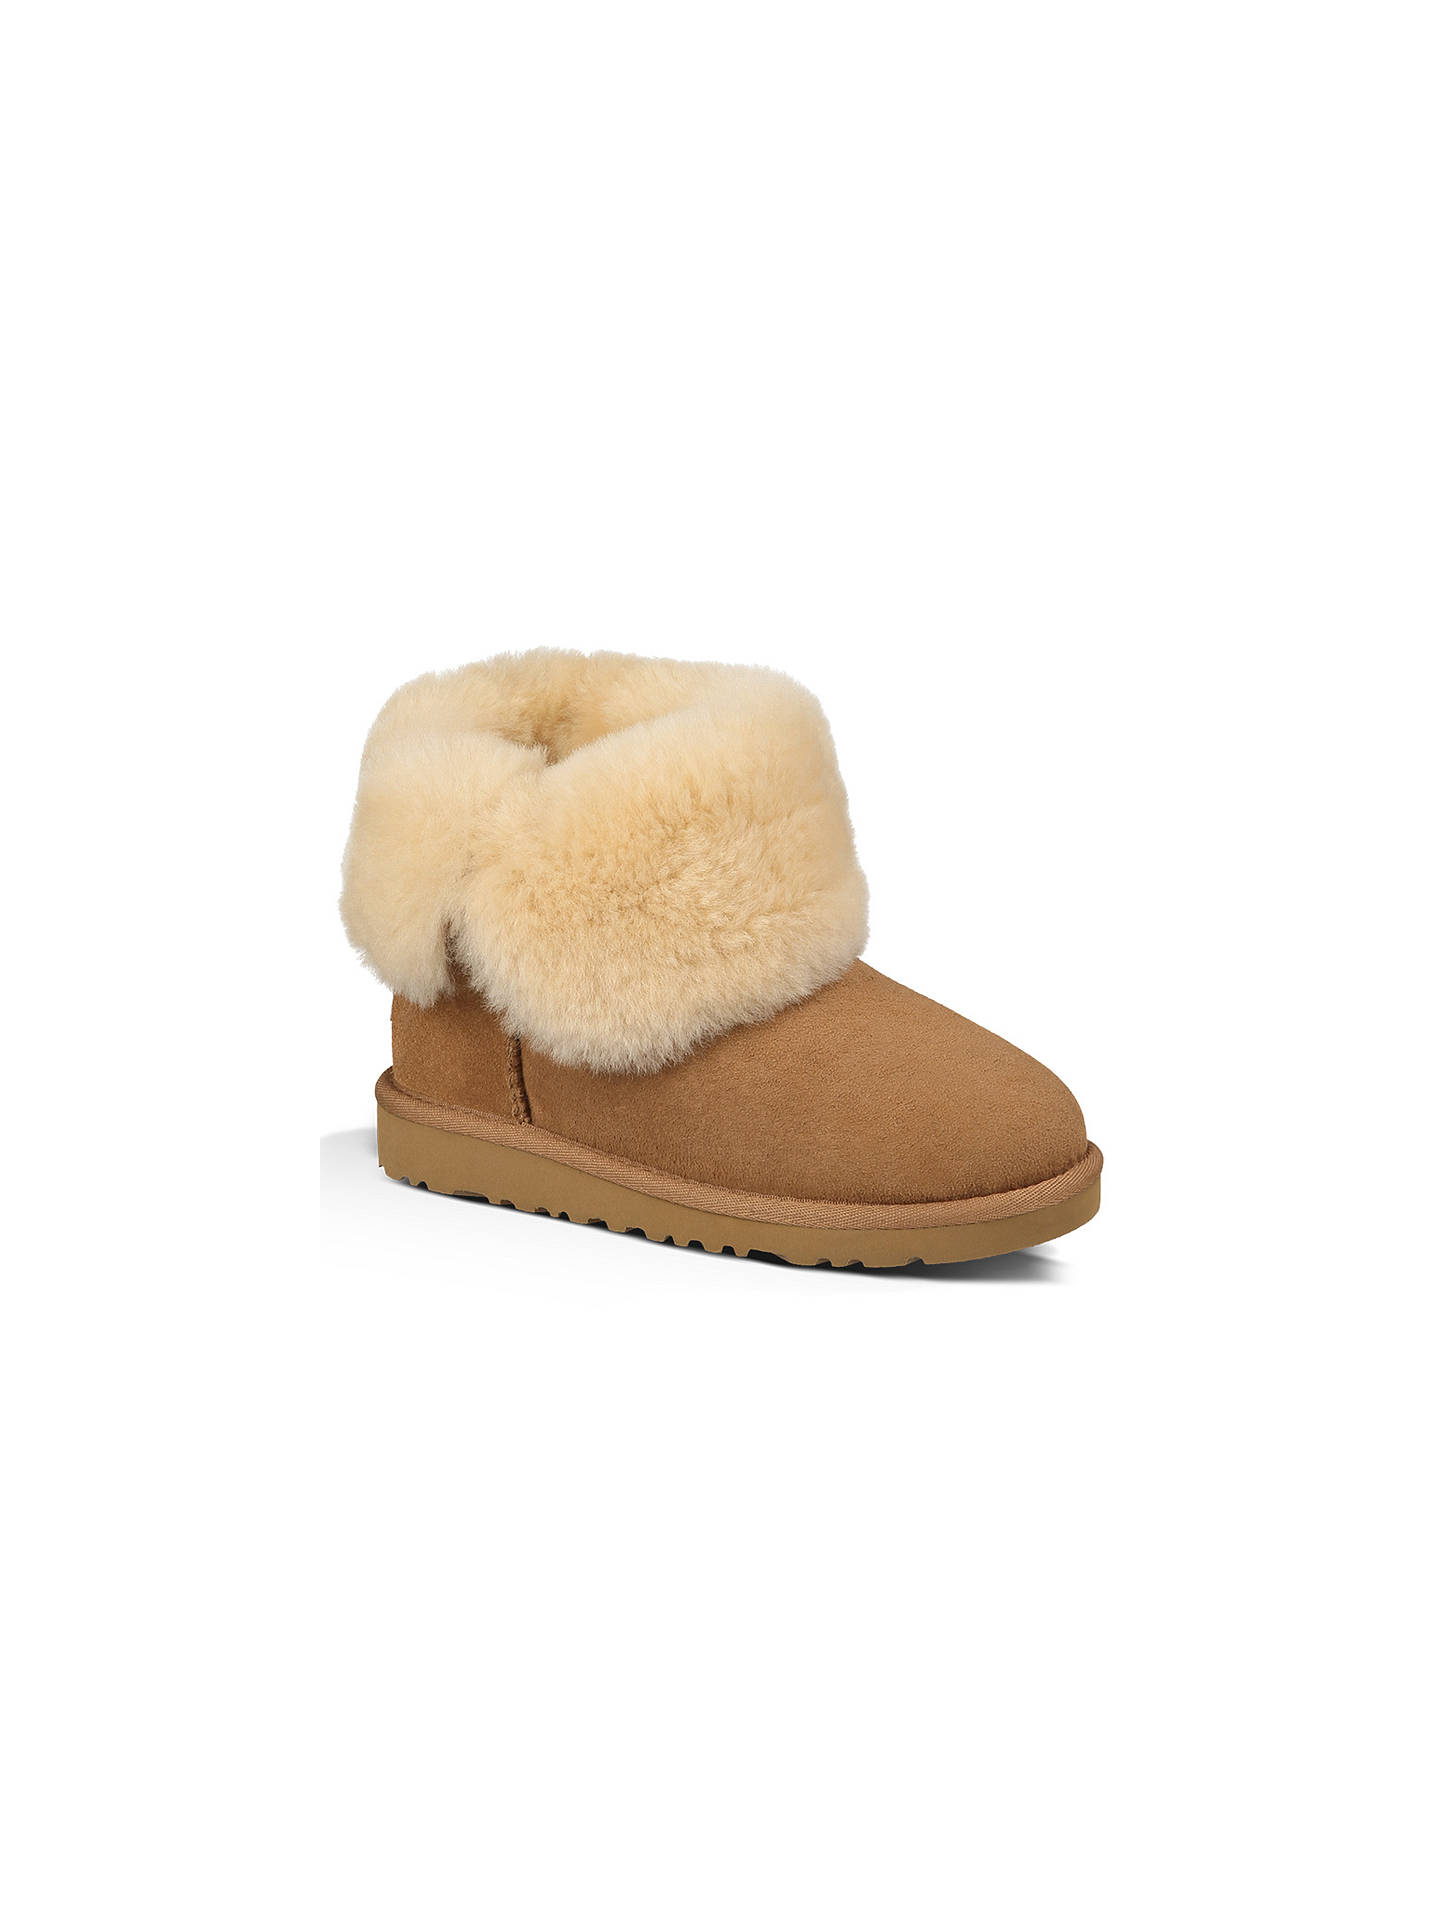 ce005a4f140b9 UGG Children's Bailey Button Boots, Chestnut at John Lewis & Partners